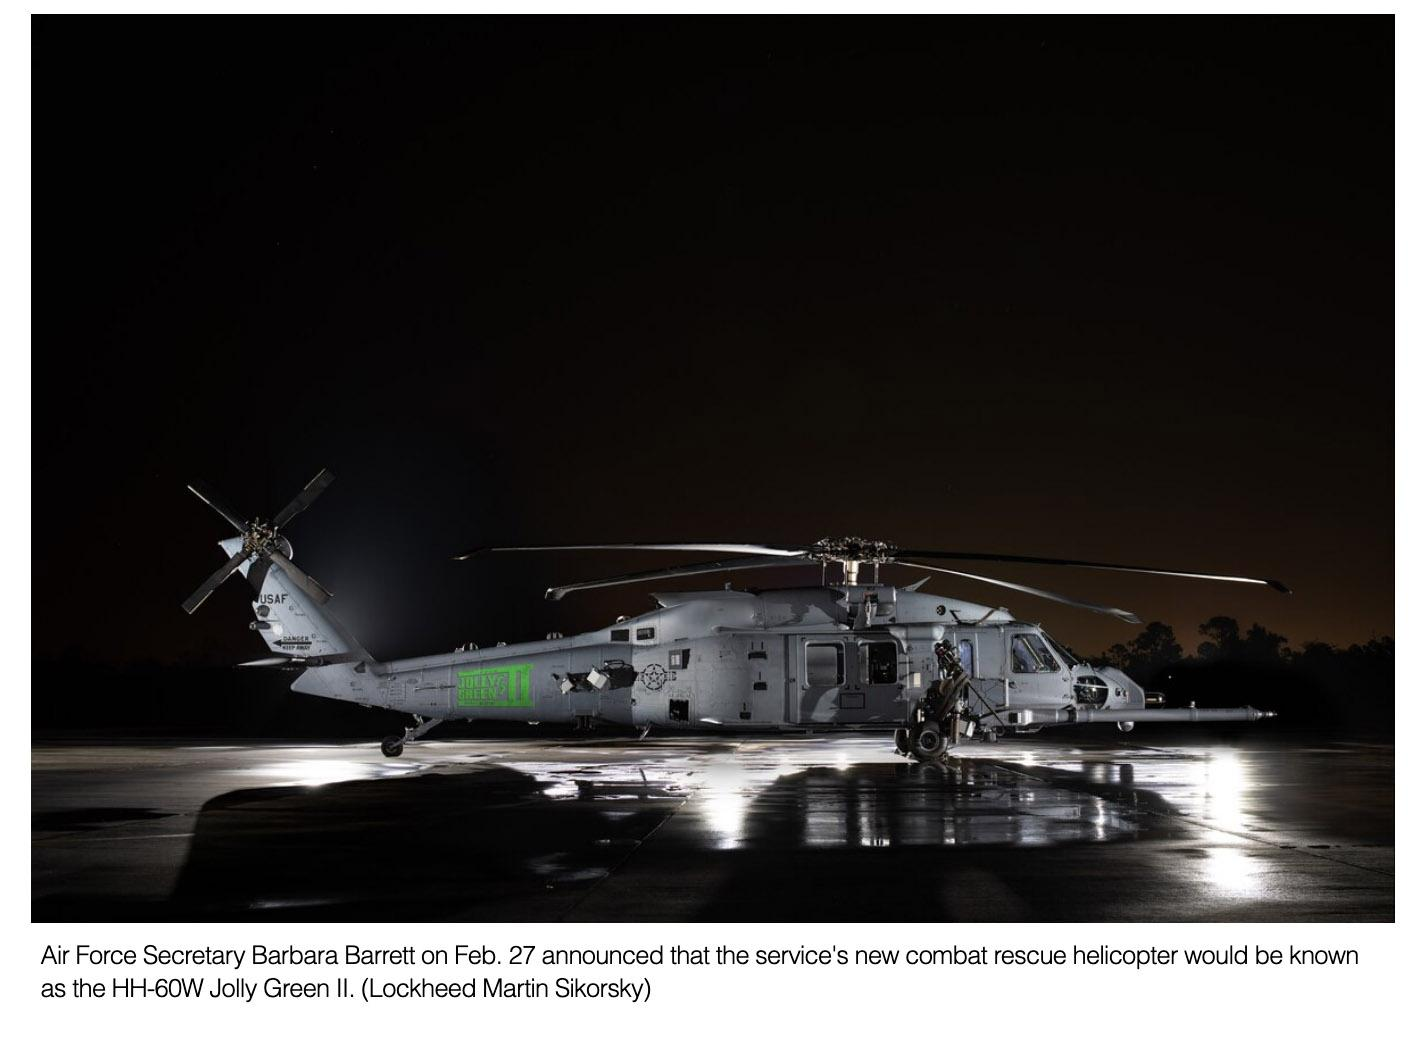 Ho, ho, ho, here's the name of the Air Force's combat rescue helicopter